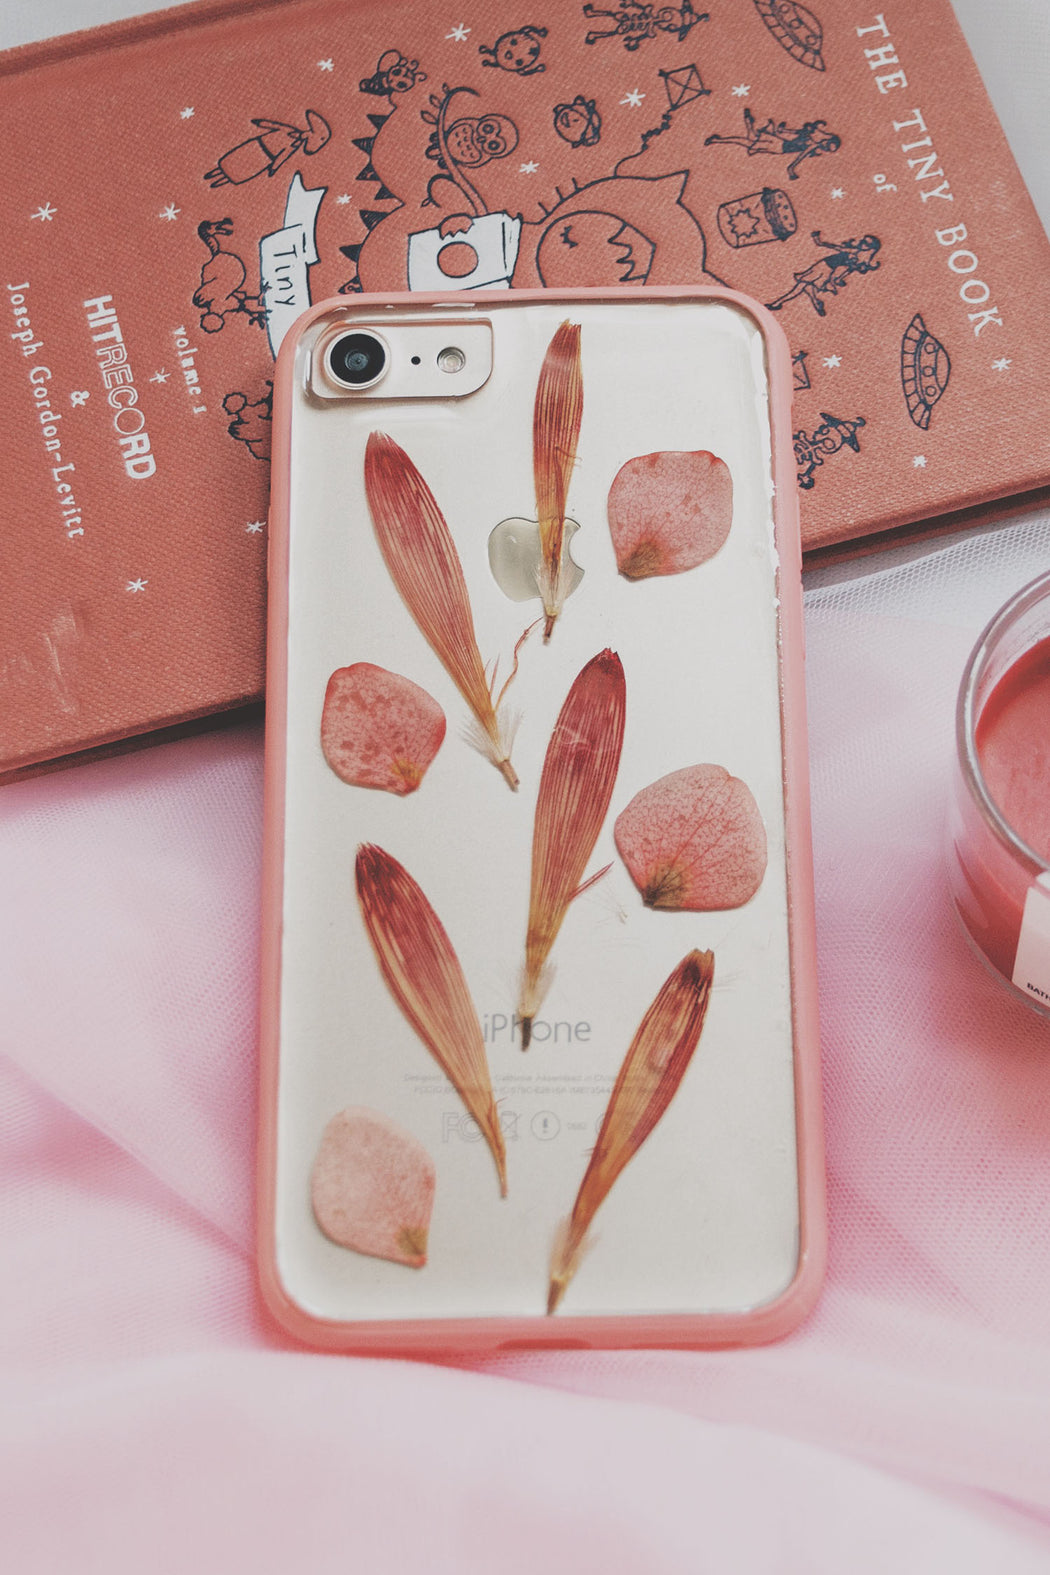 Pressed_Flower_Floral_Cute_Protective_Anti_Drop_iPhone_7_8_Case_Sunrise_Hues_Floral_Neverland_Floralfy